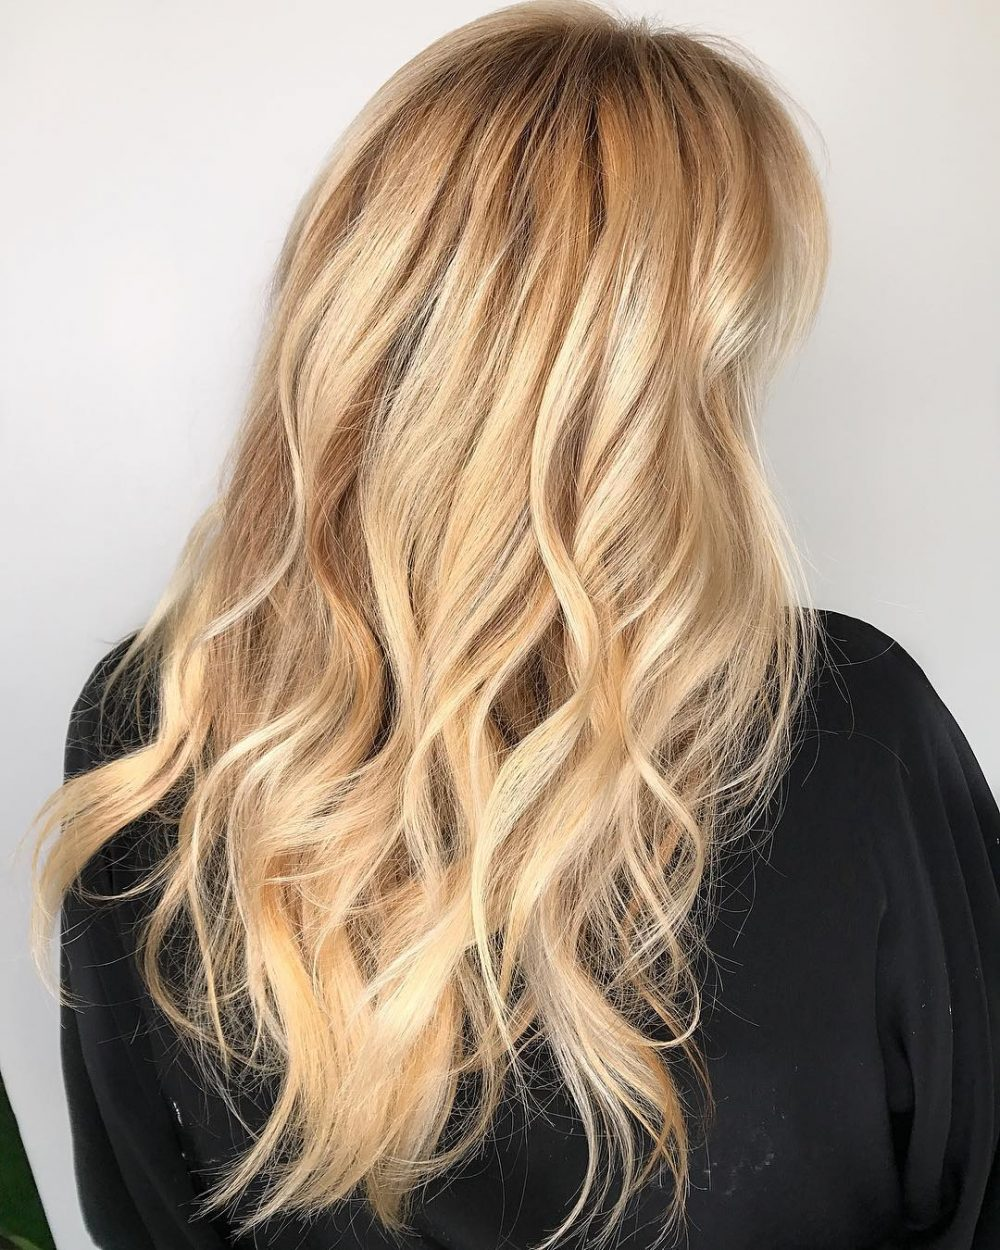 35 Gorgeous Hairstyles for Long Blonde Hair